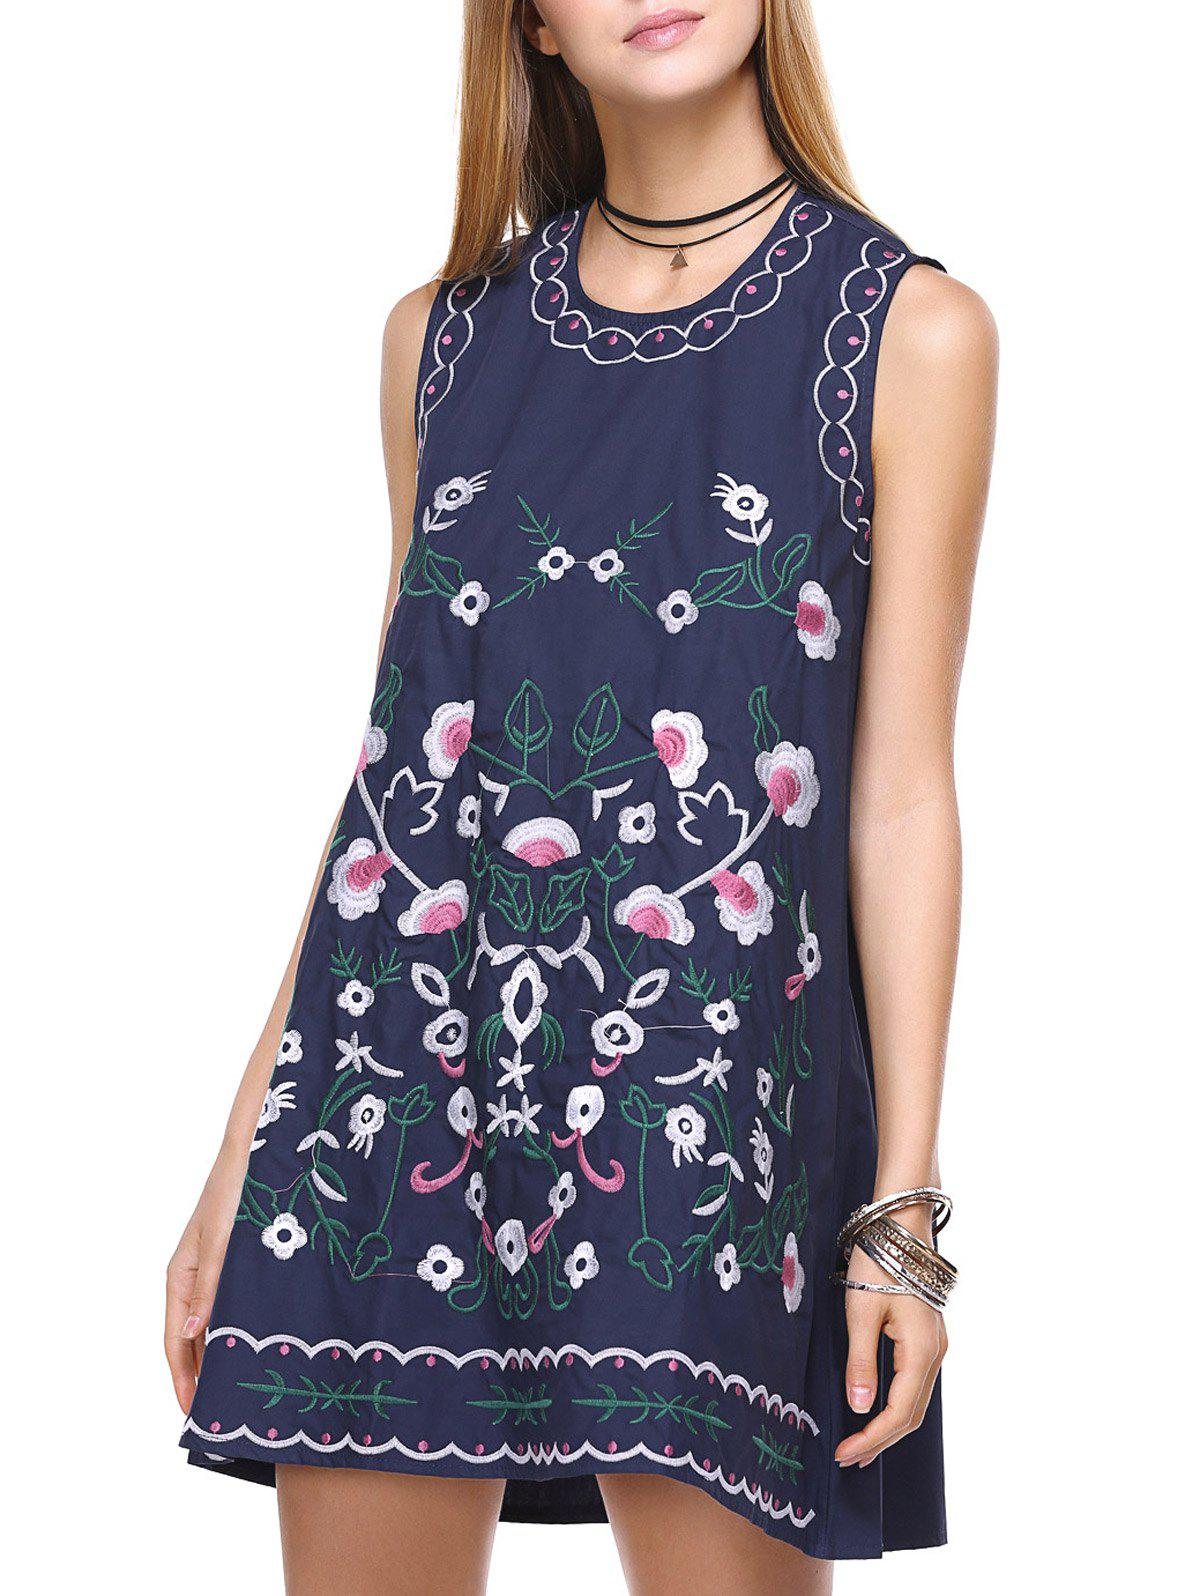 Ethnic Sleeveless Embroidery Dress For Women